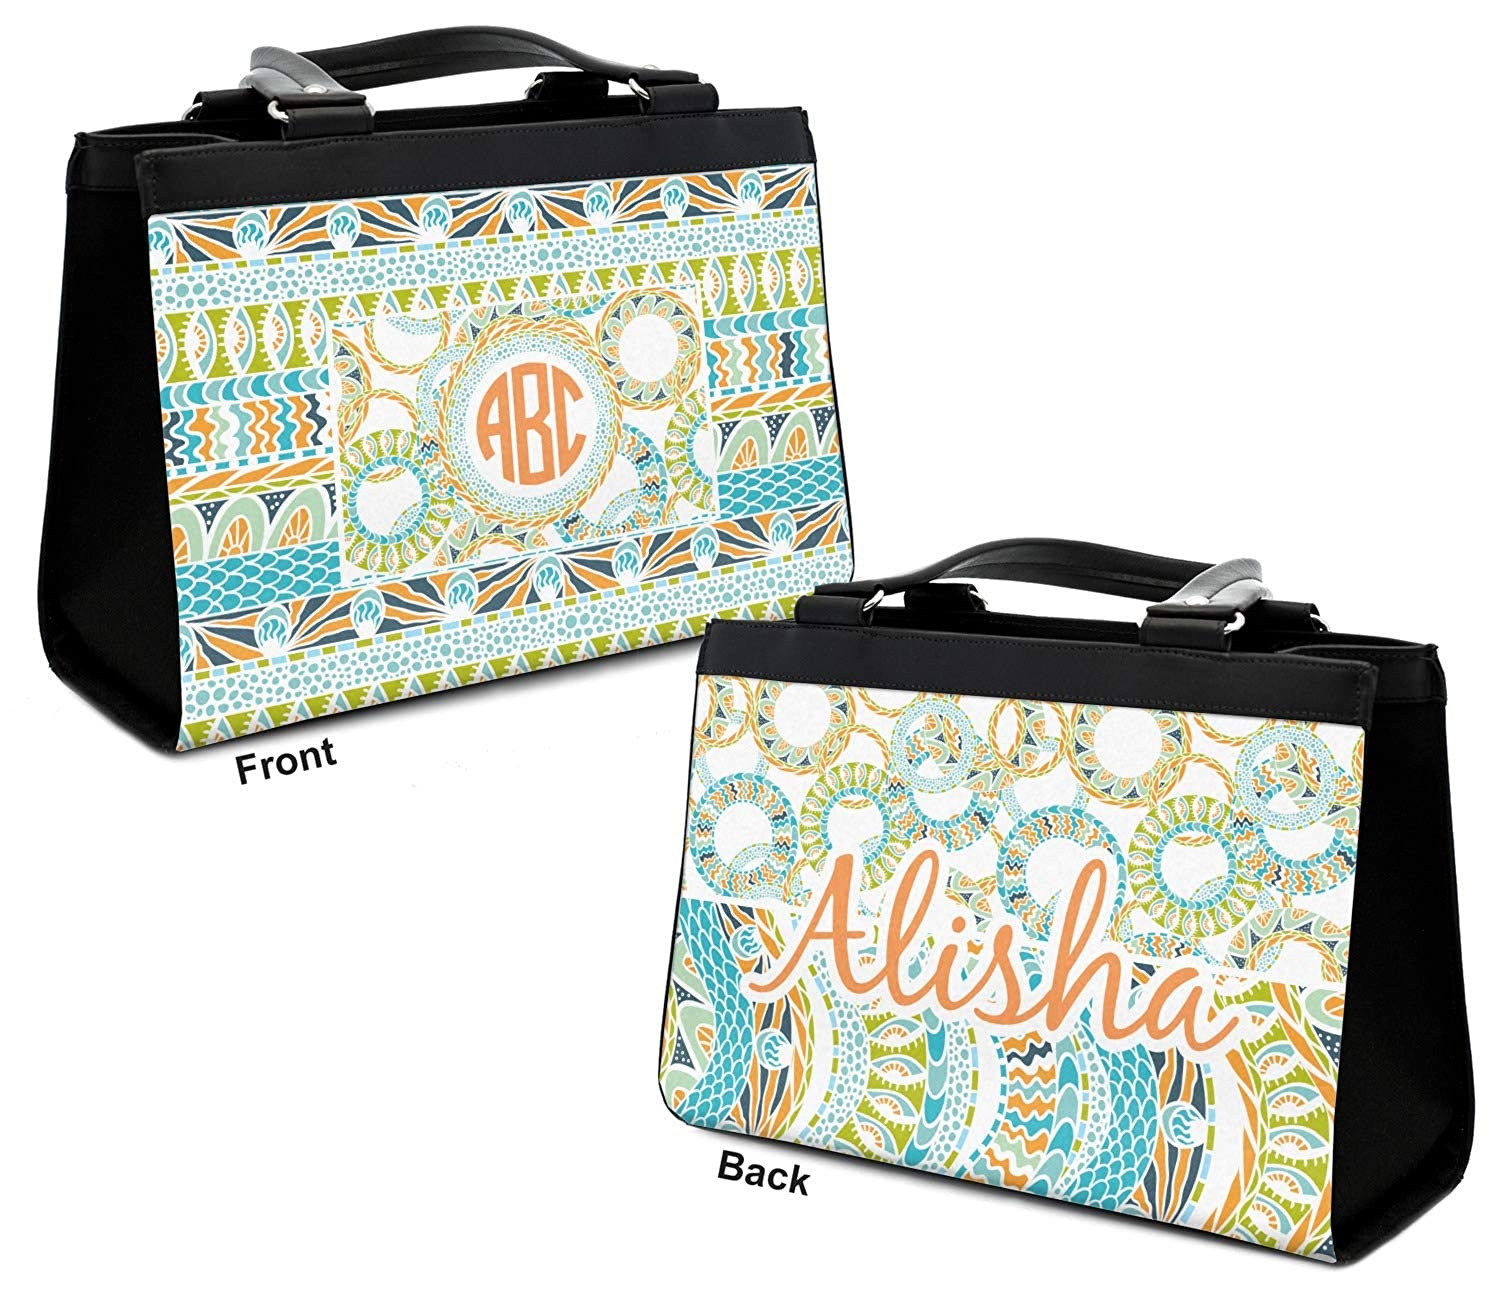 Personalized Teal Ribbons /& Labels Classic Tote Purse w//Leather Trim Front /& Back